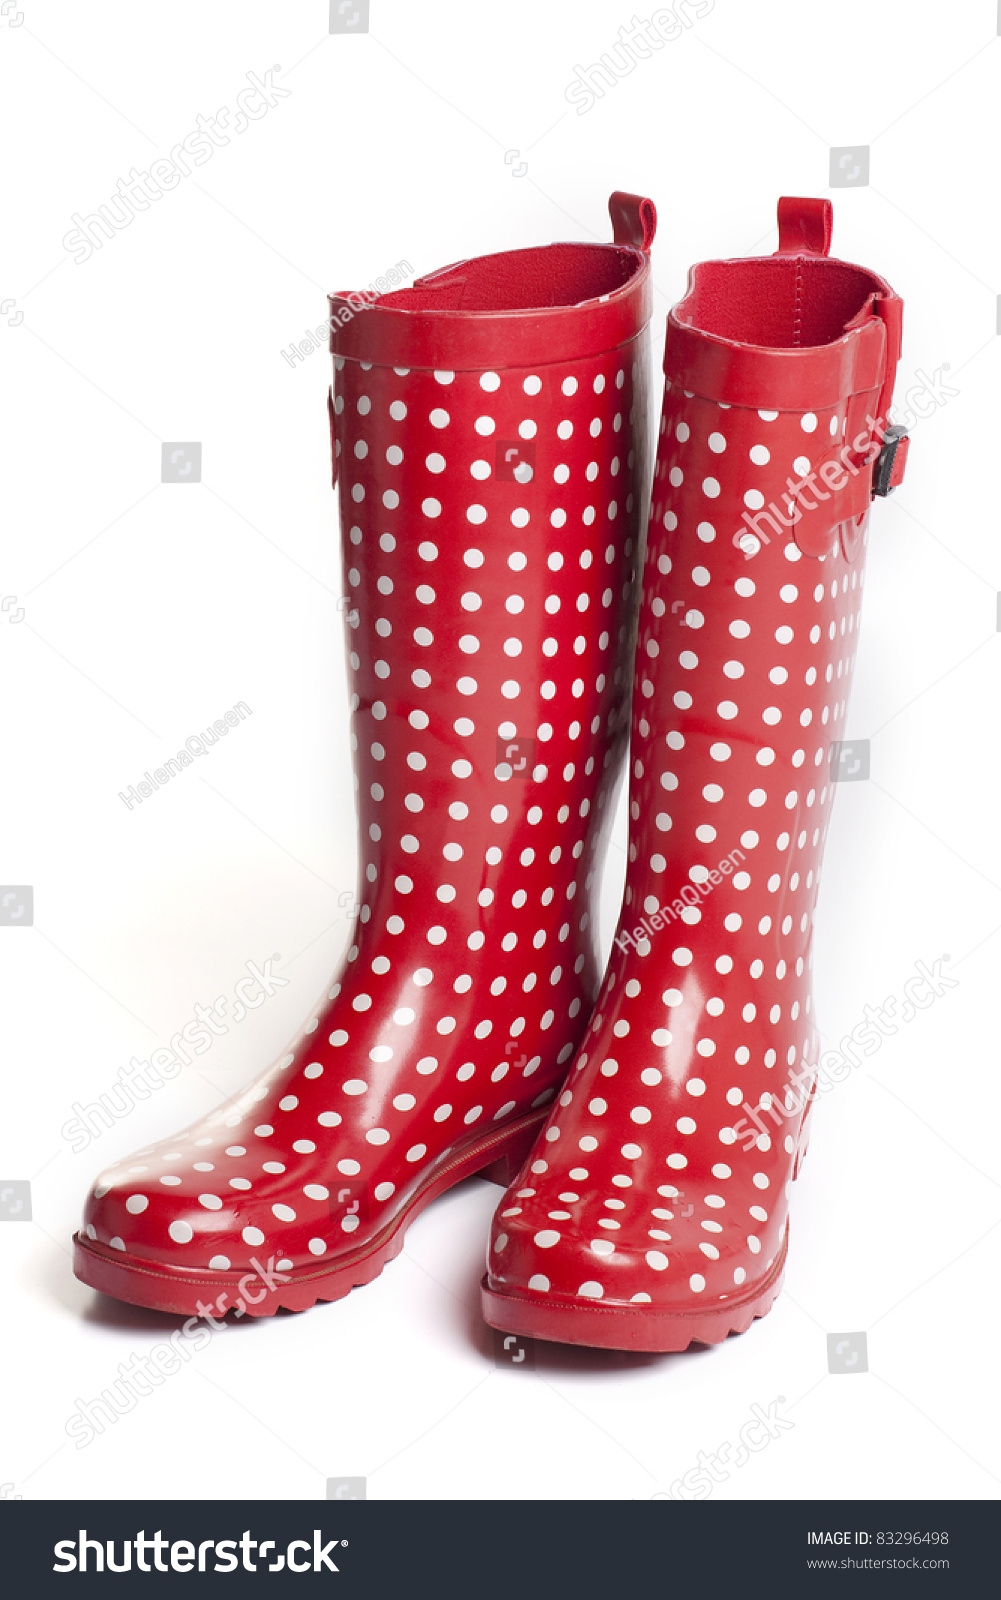 Polka Dot Red Rain Boots On Stock Photo 83296498 - Shutterstock